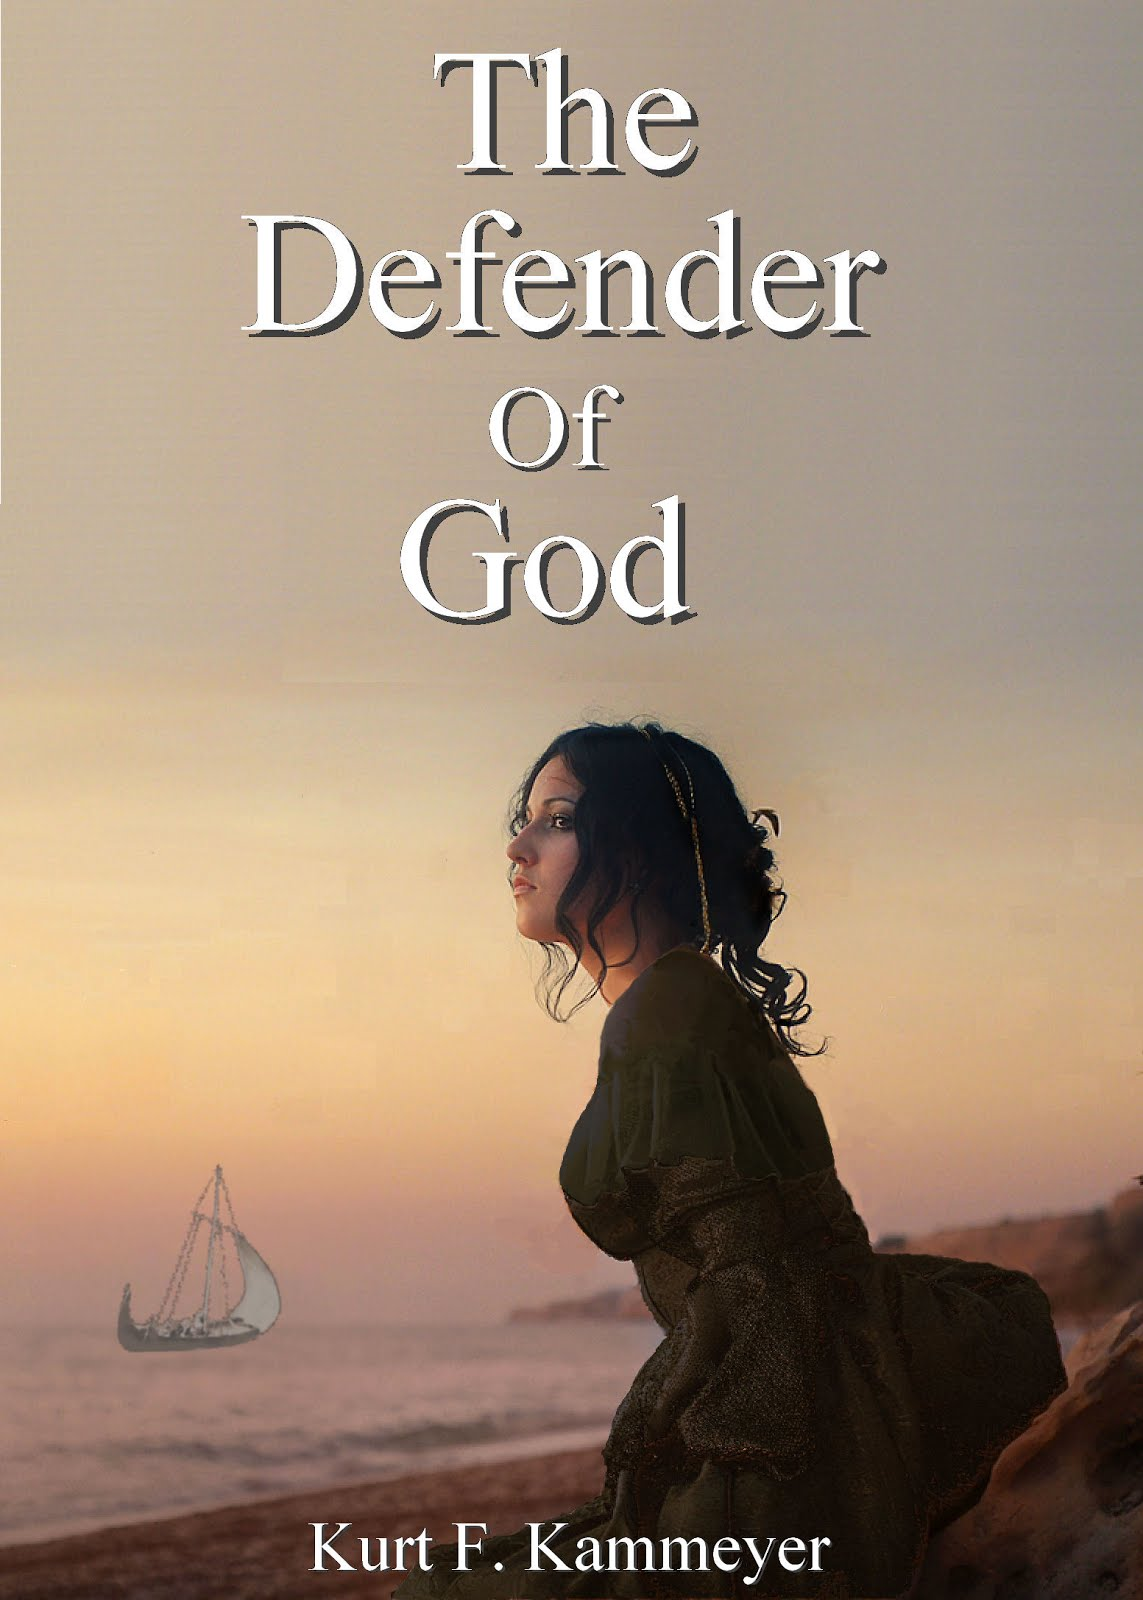 The Defender of God